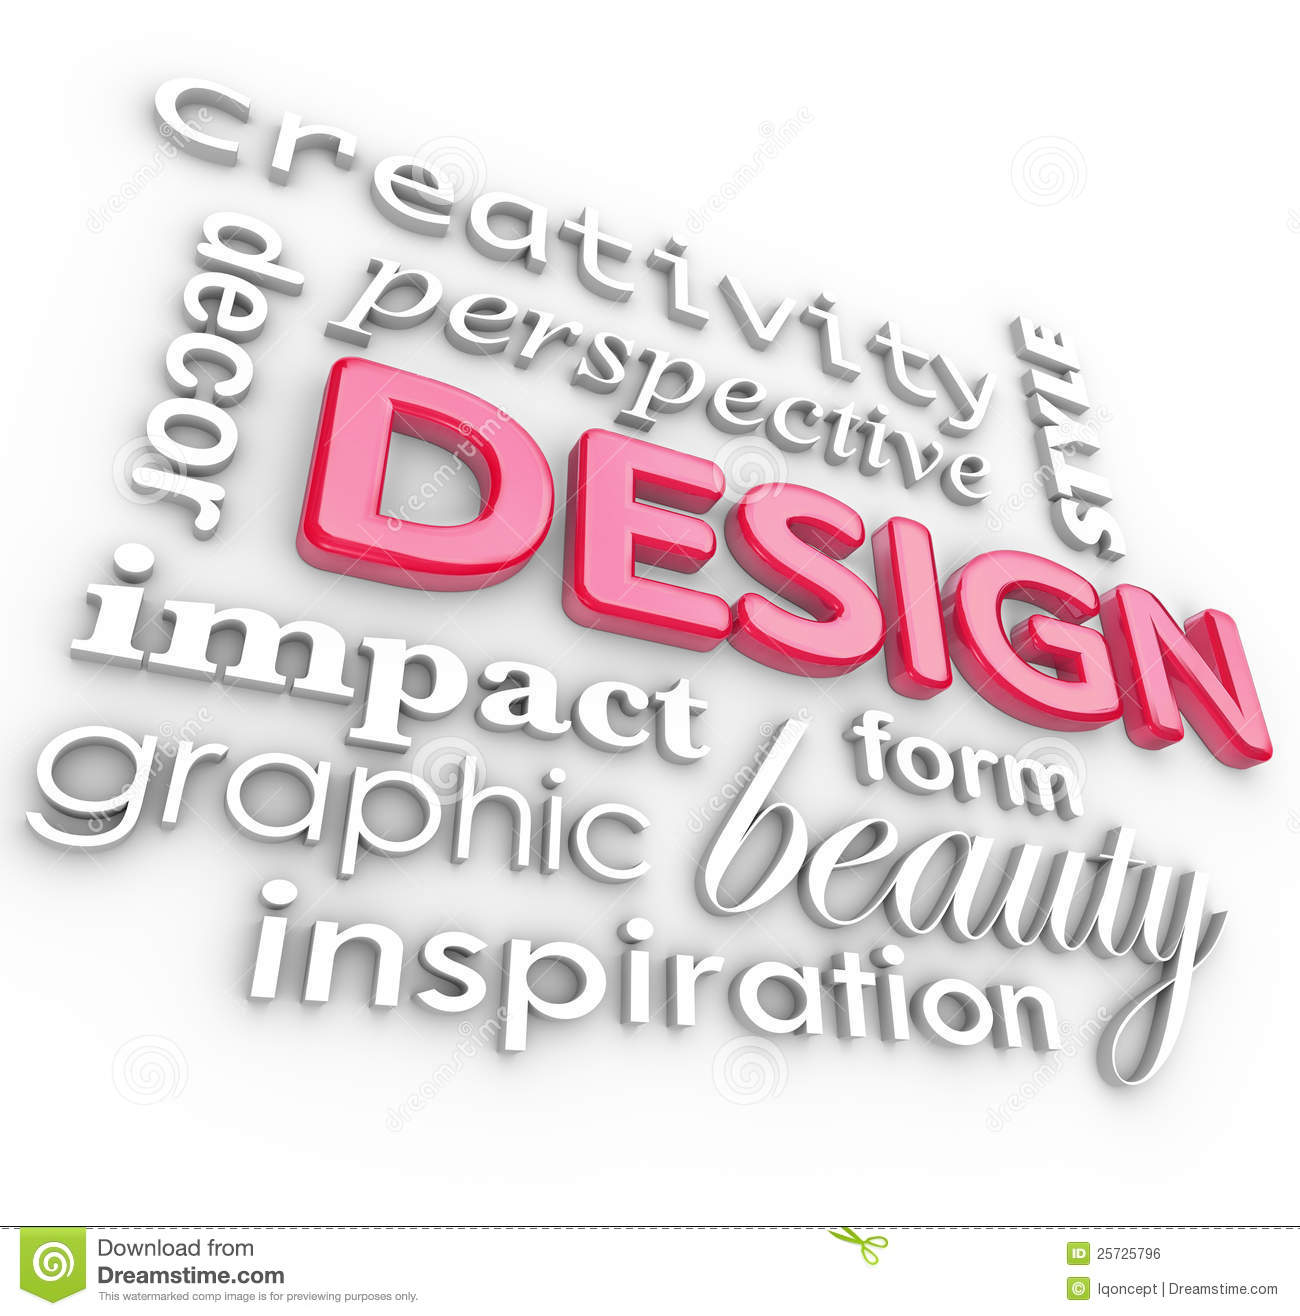 Design words collage creative perspective style royalty free stock image image 25725796 for Microsoft word graphic design